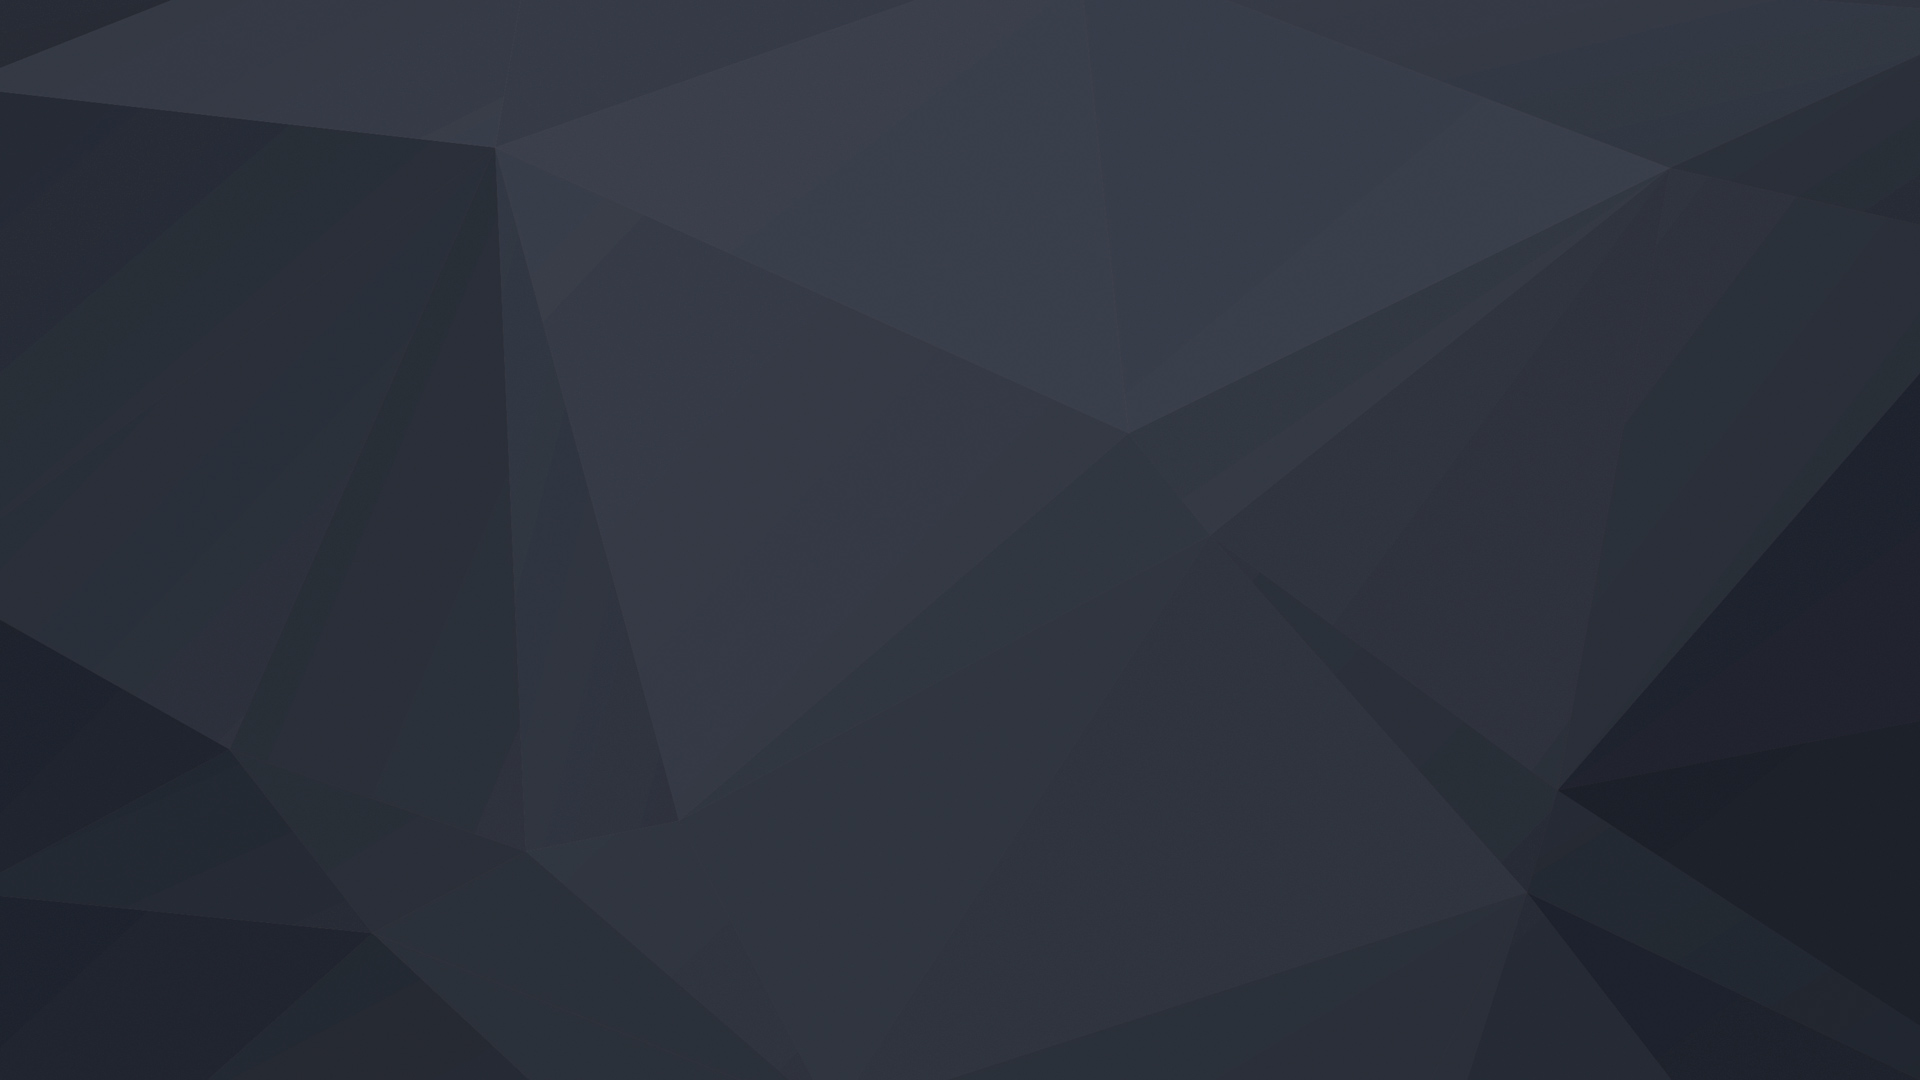 Hands-on live plus self-paced course for mastering HTML5 and CSS3